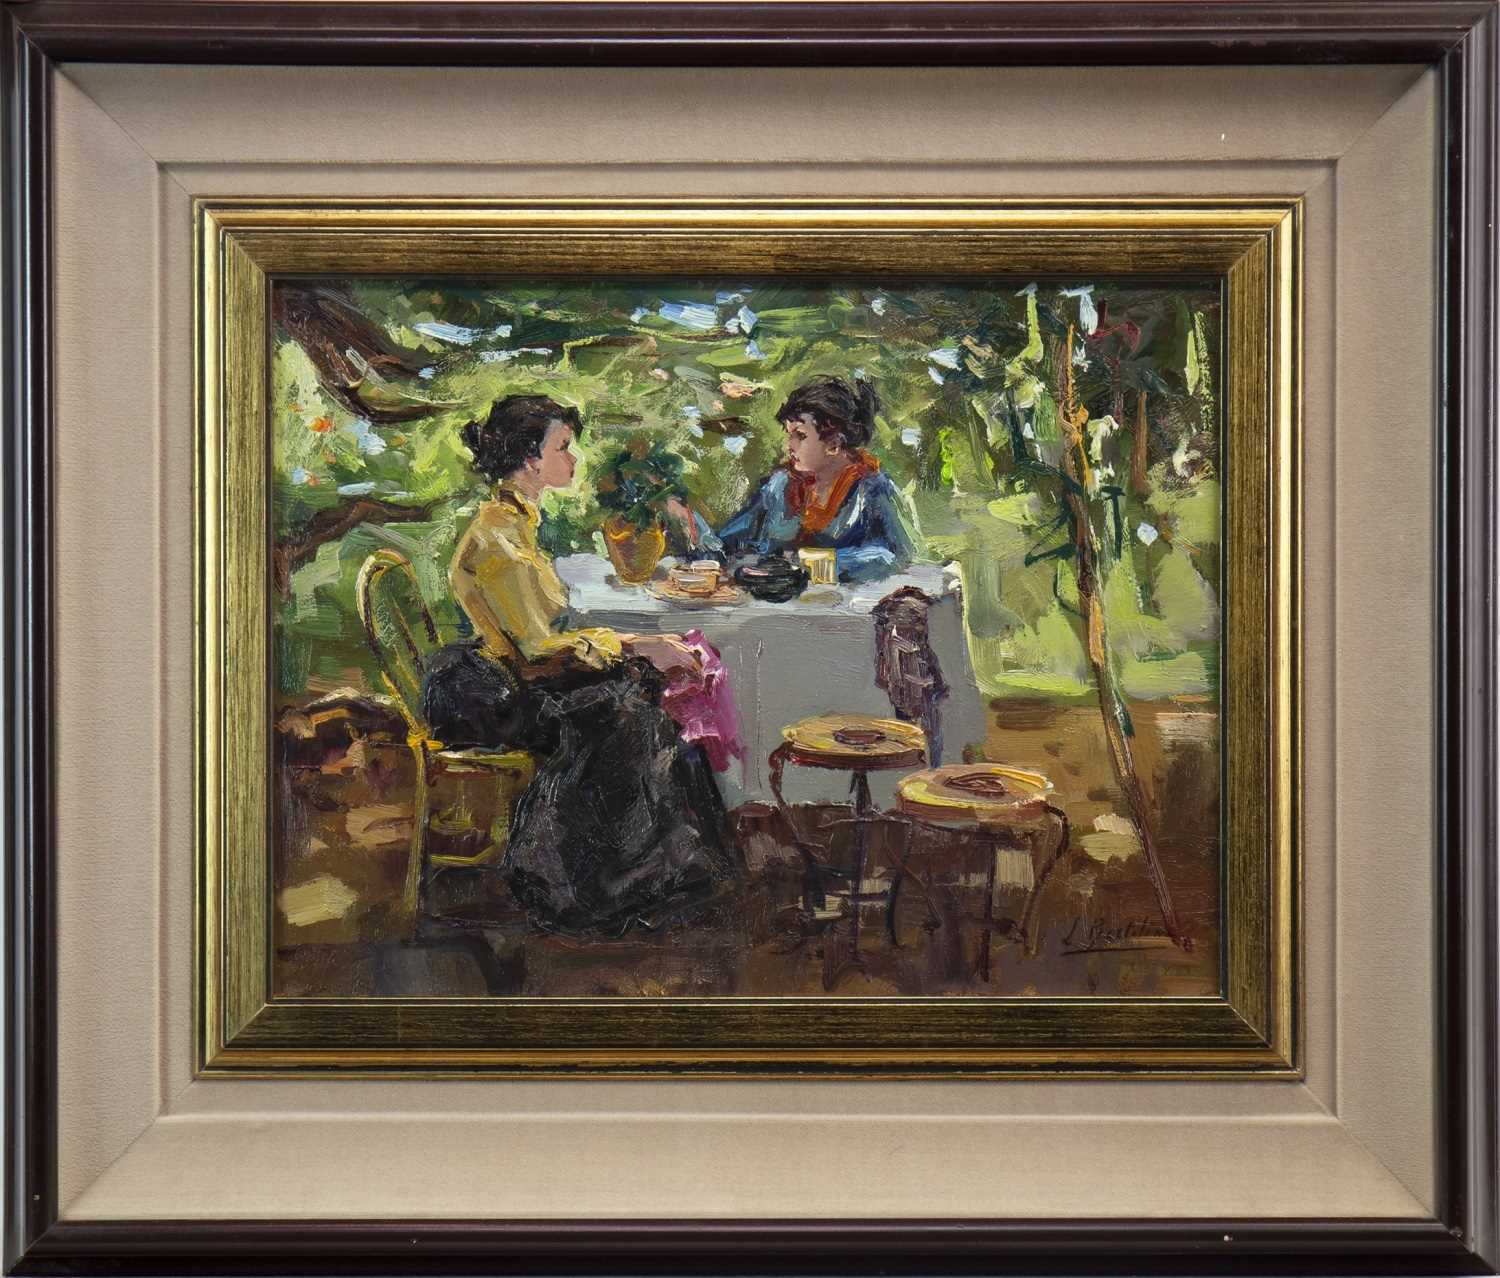 Lot 603-LADIES WHO LUNCH, AN OIL